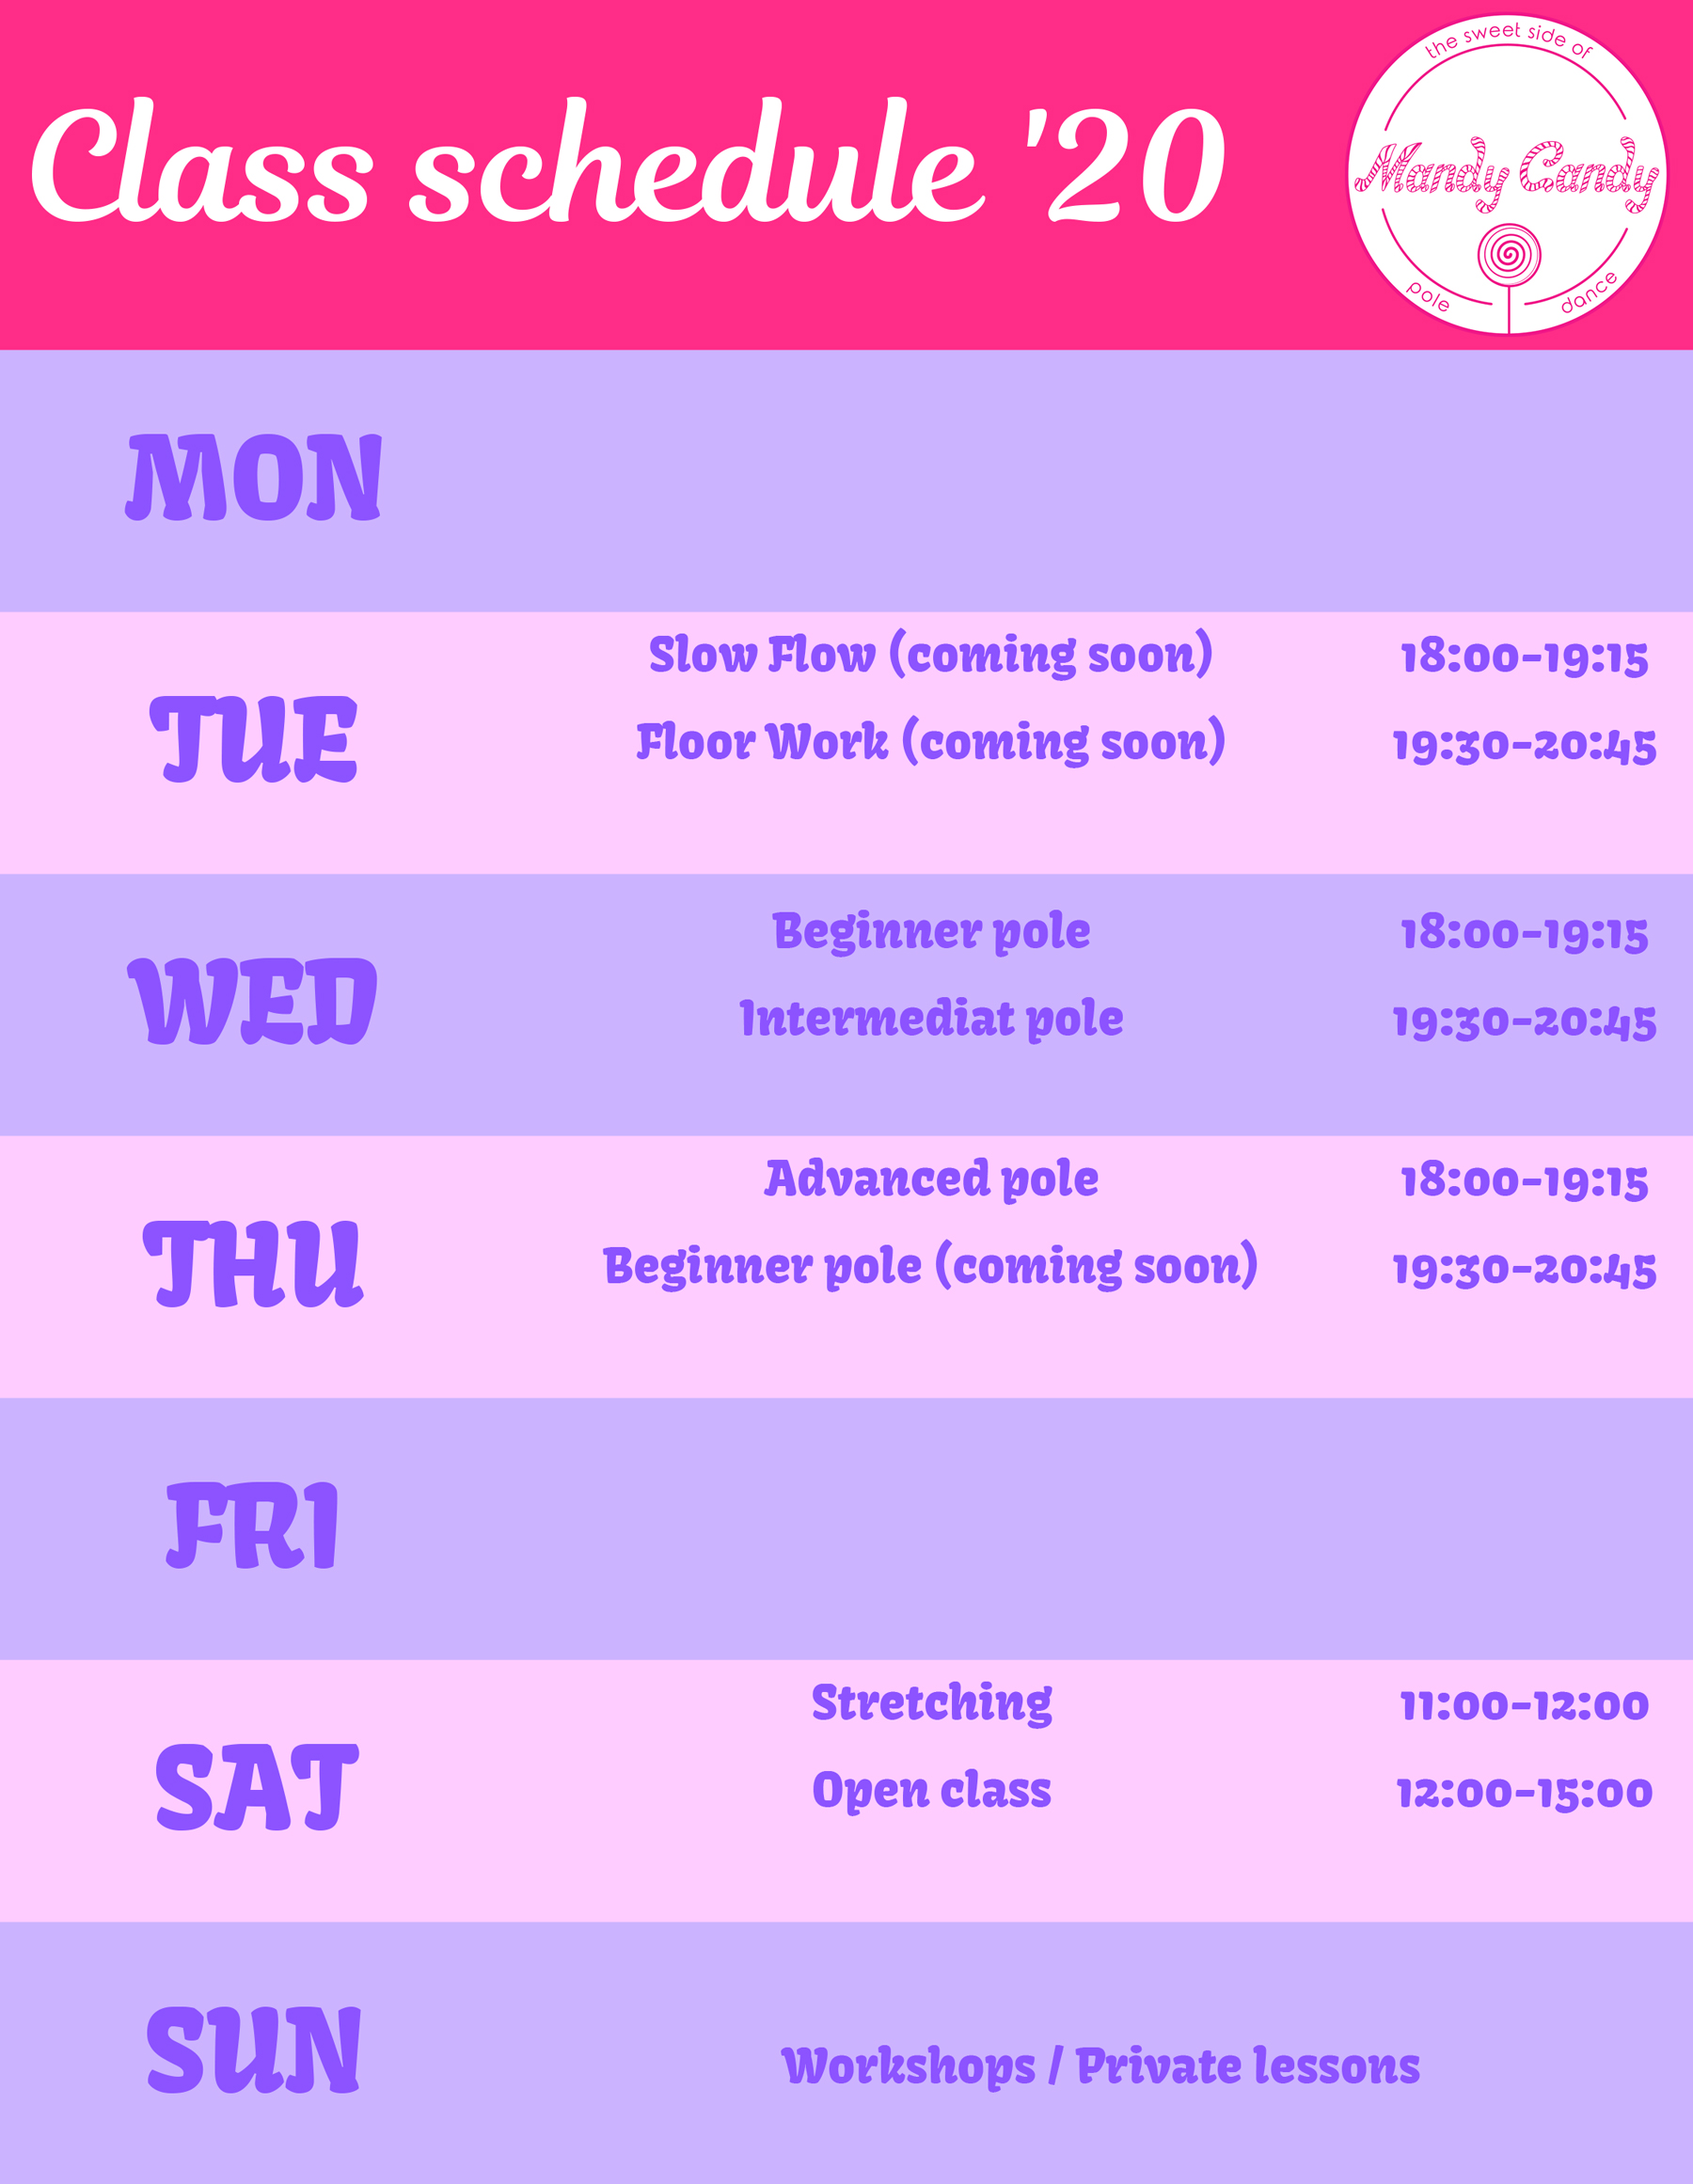 Class schedule 2020 Mandy Candy's Pole Dance Studio